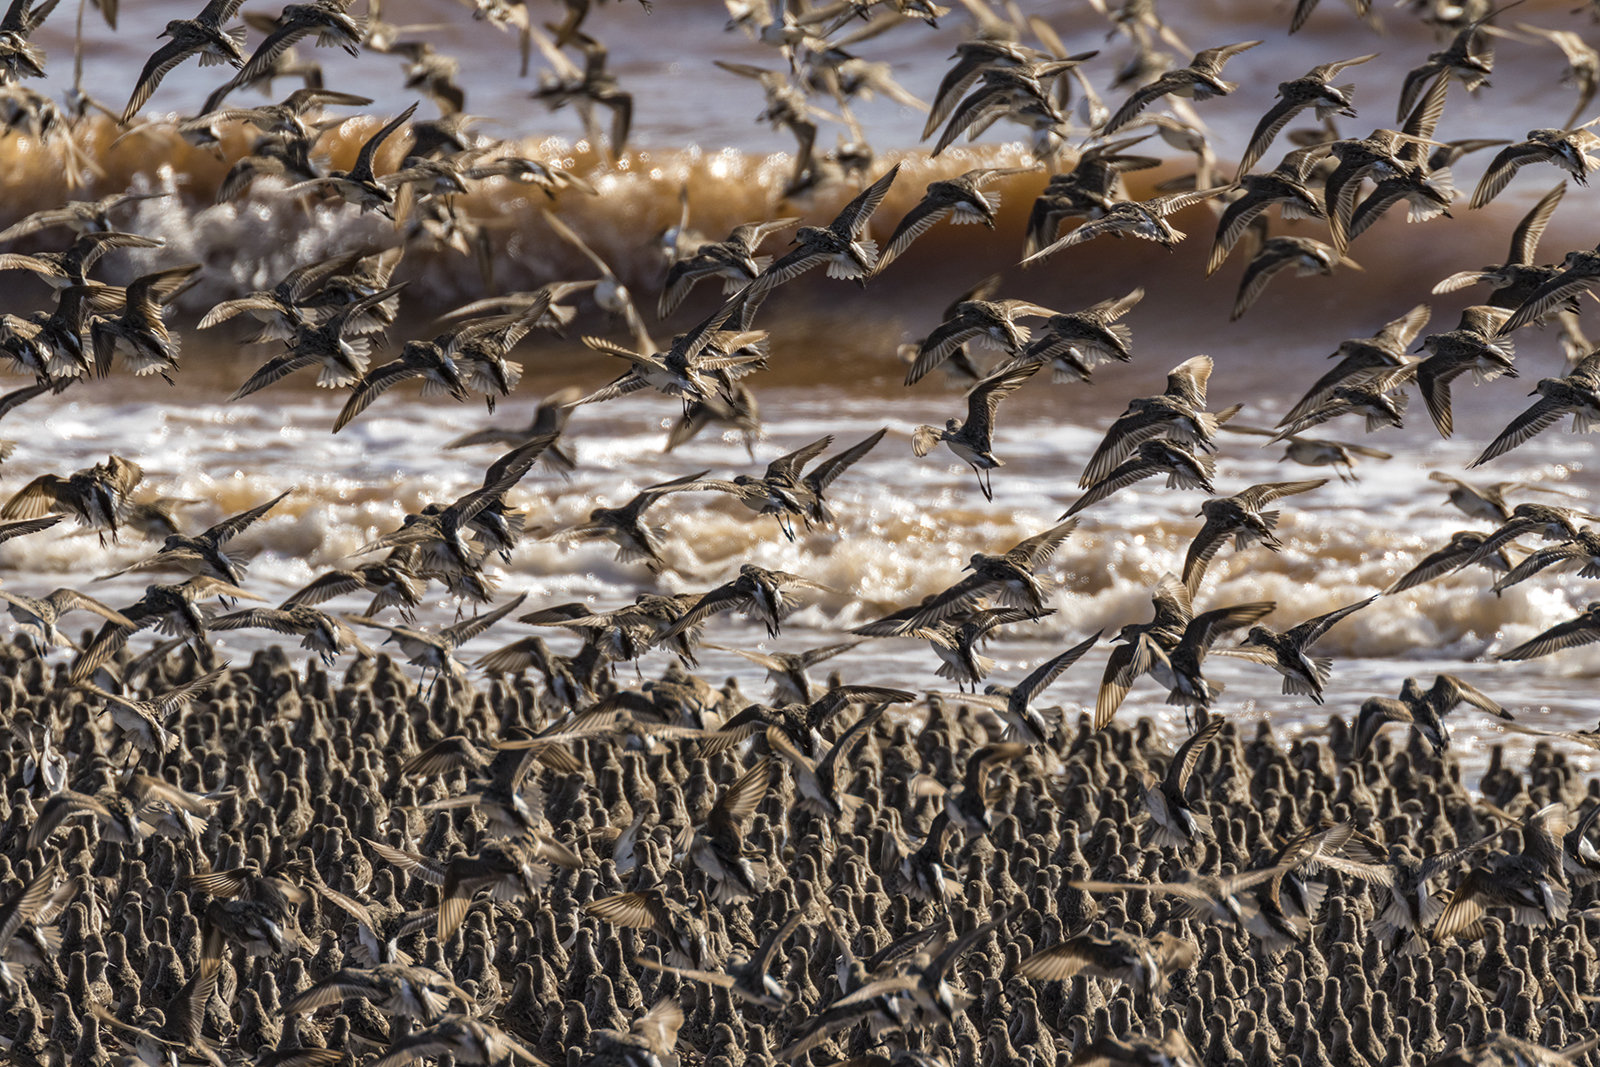 Semipalmated_Sandpipers-03-BRimages.ca